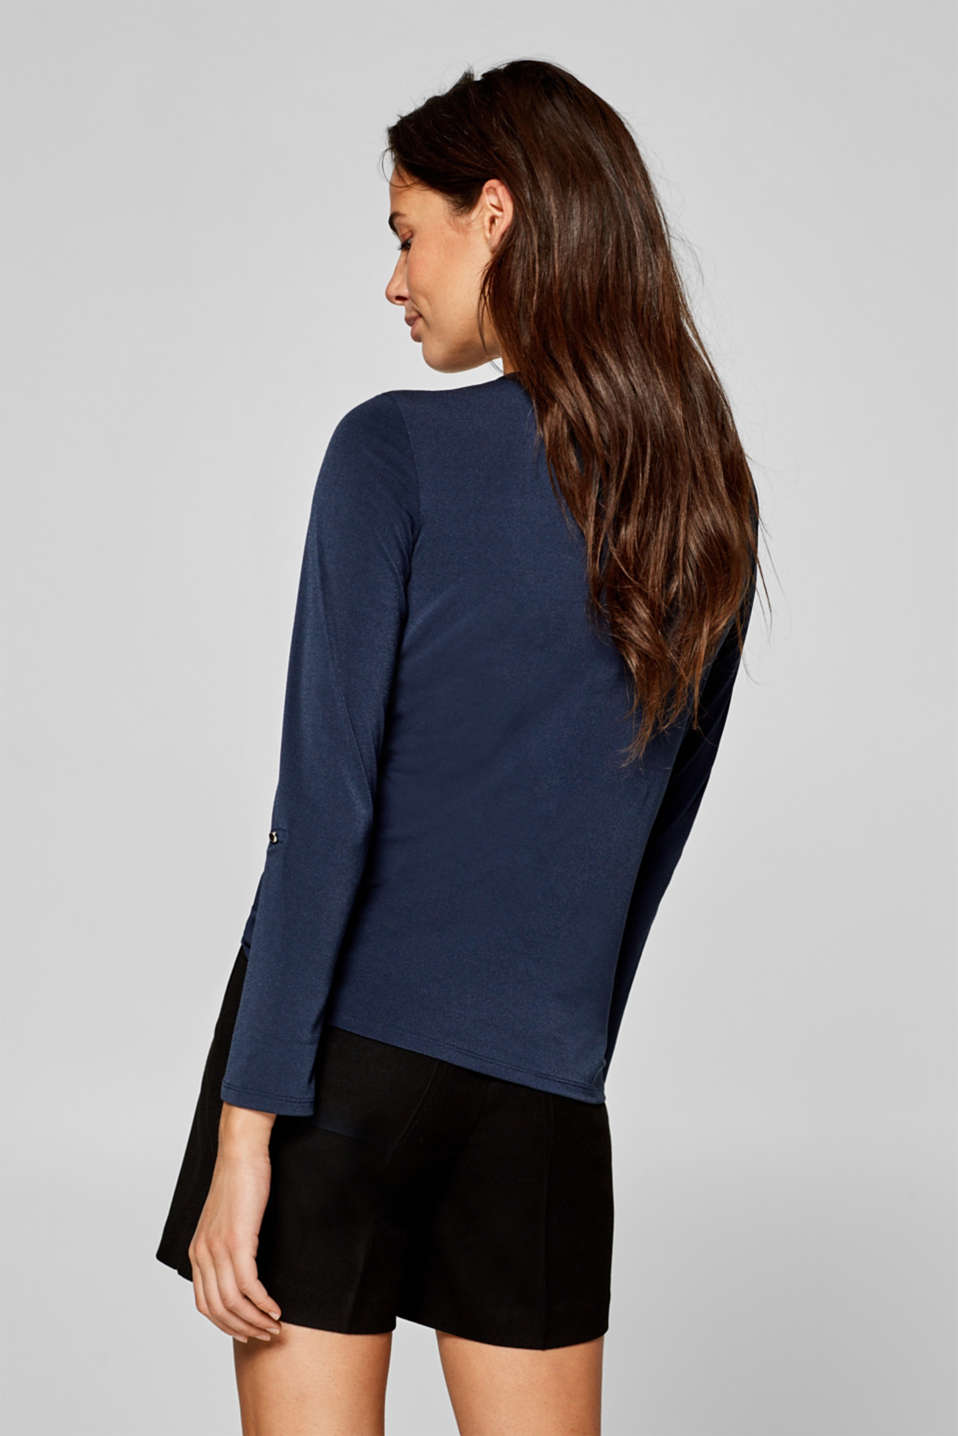 Stretchy long sleeve top with decorative details, NAVY, detail image number 3